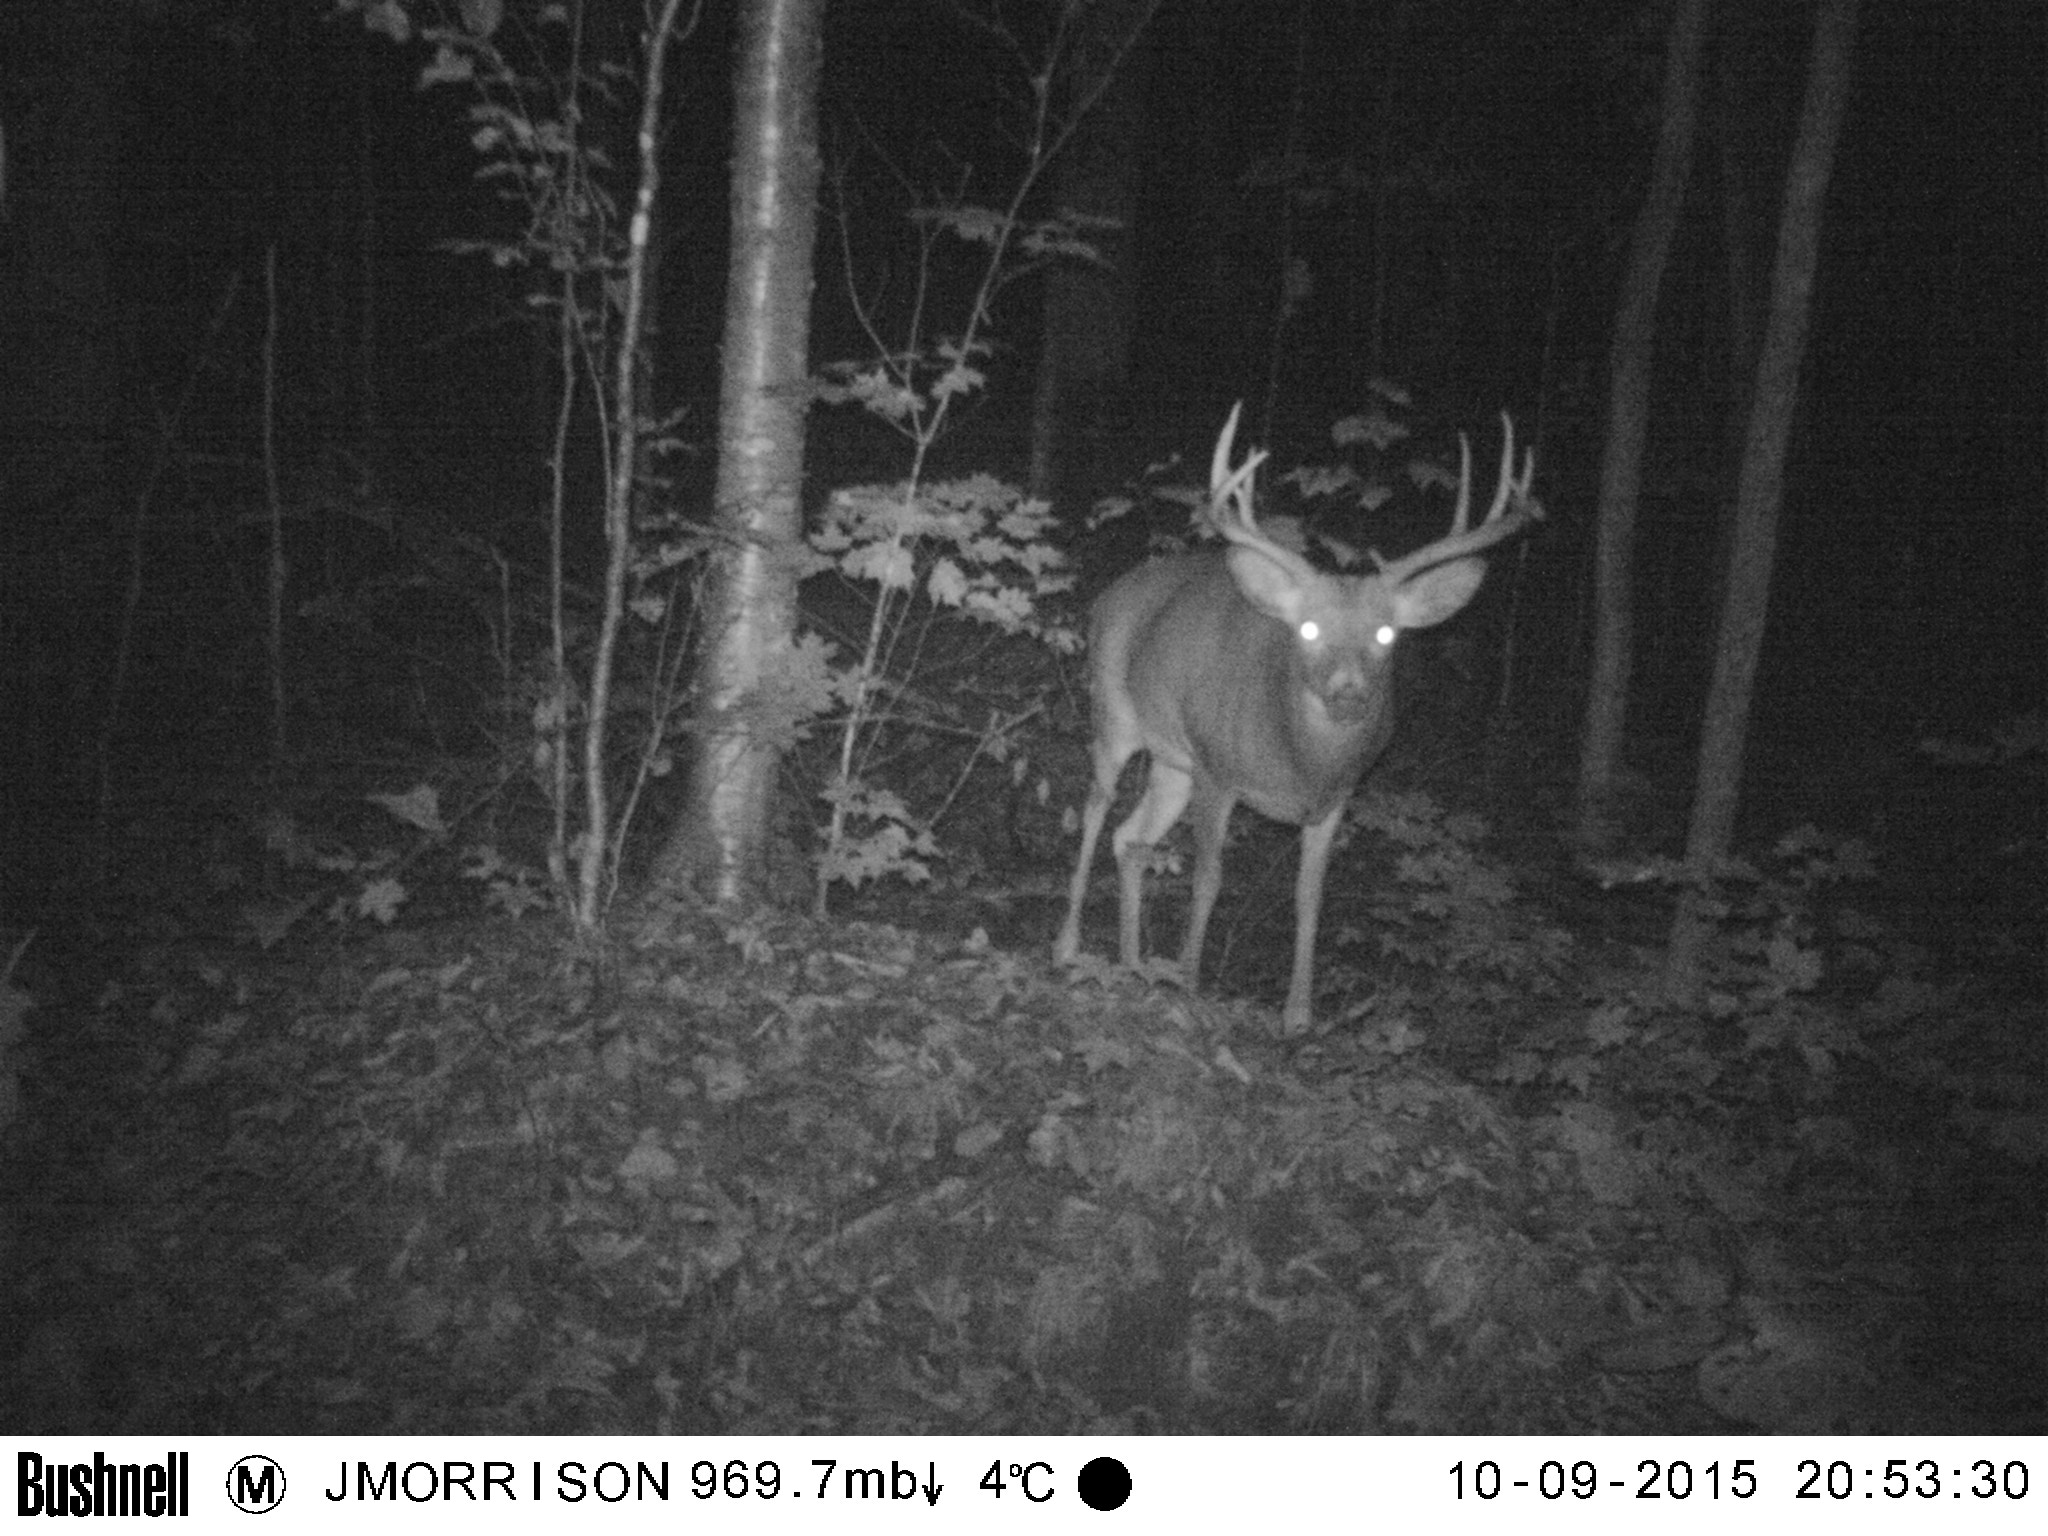 Trail Camera Shot Jeff Morrison